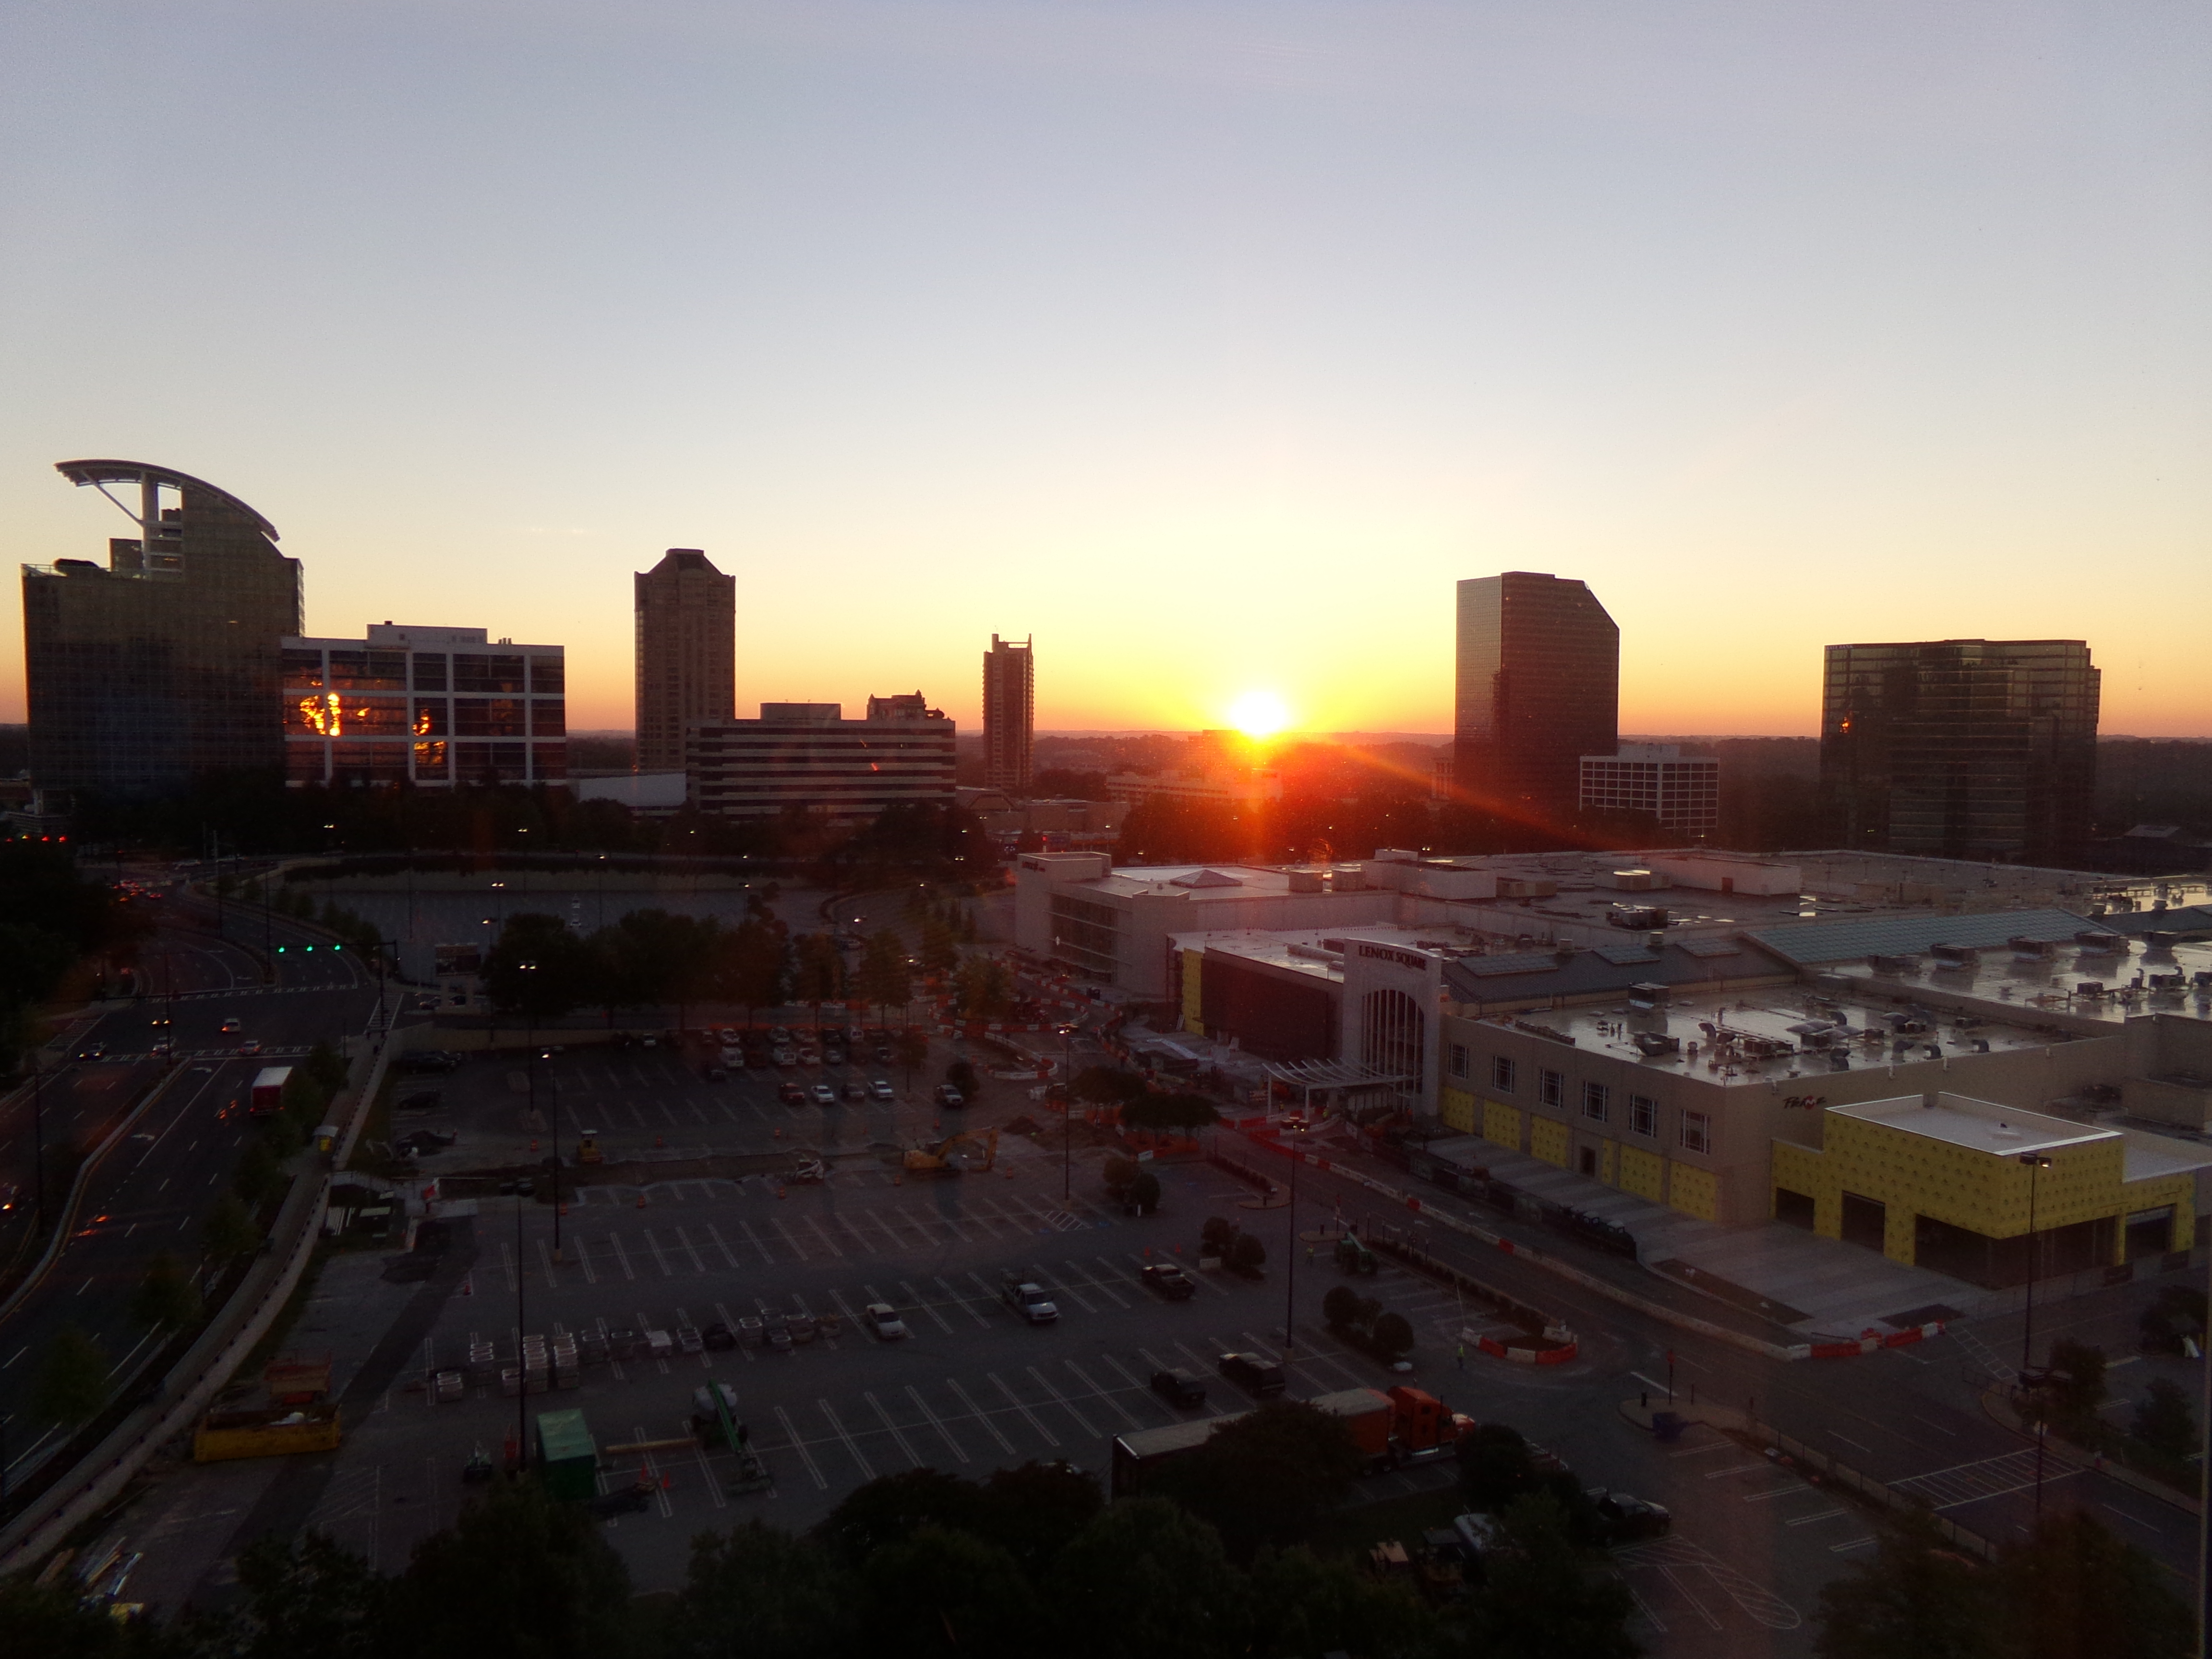 10 Things I Learned at Type-A and a Gorgeous Atlanta Sunrise